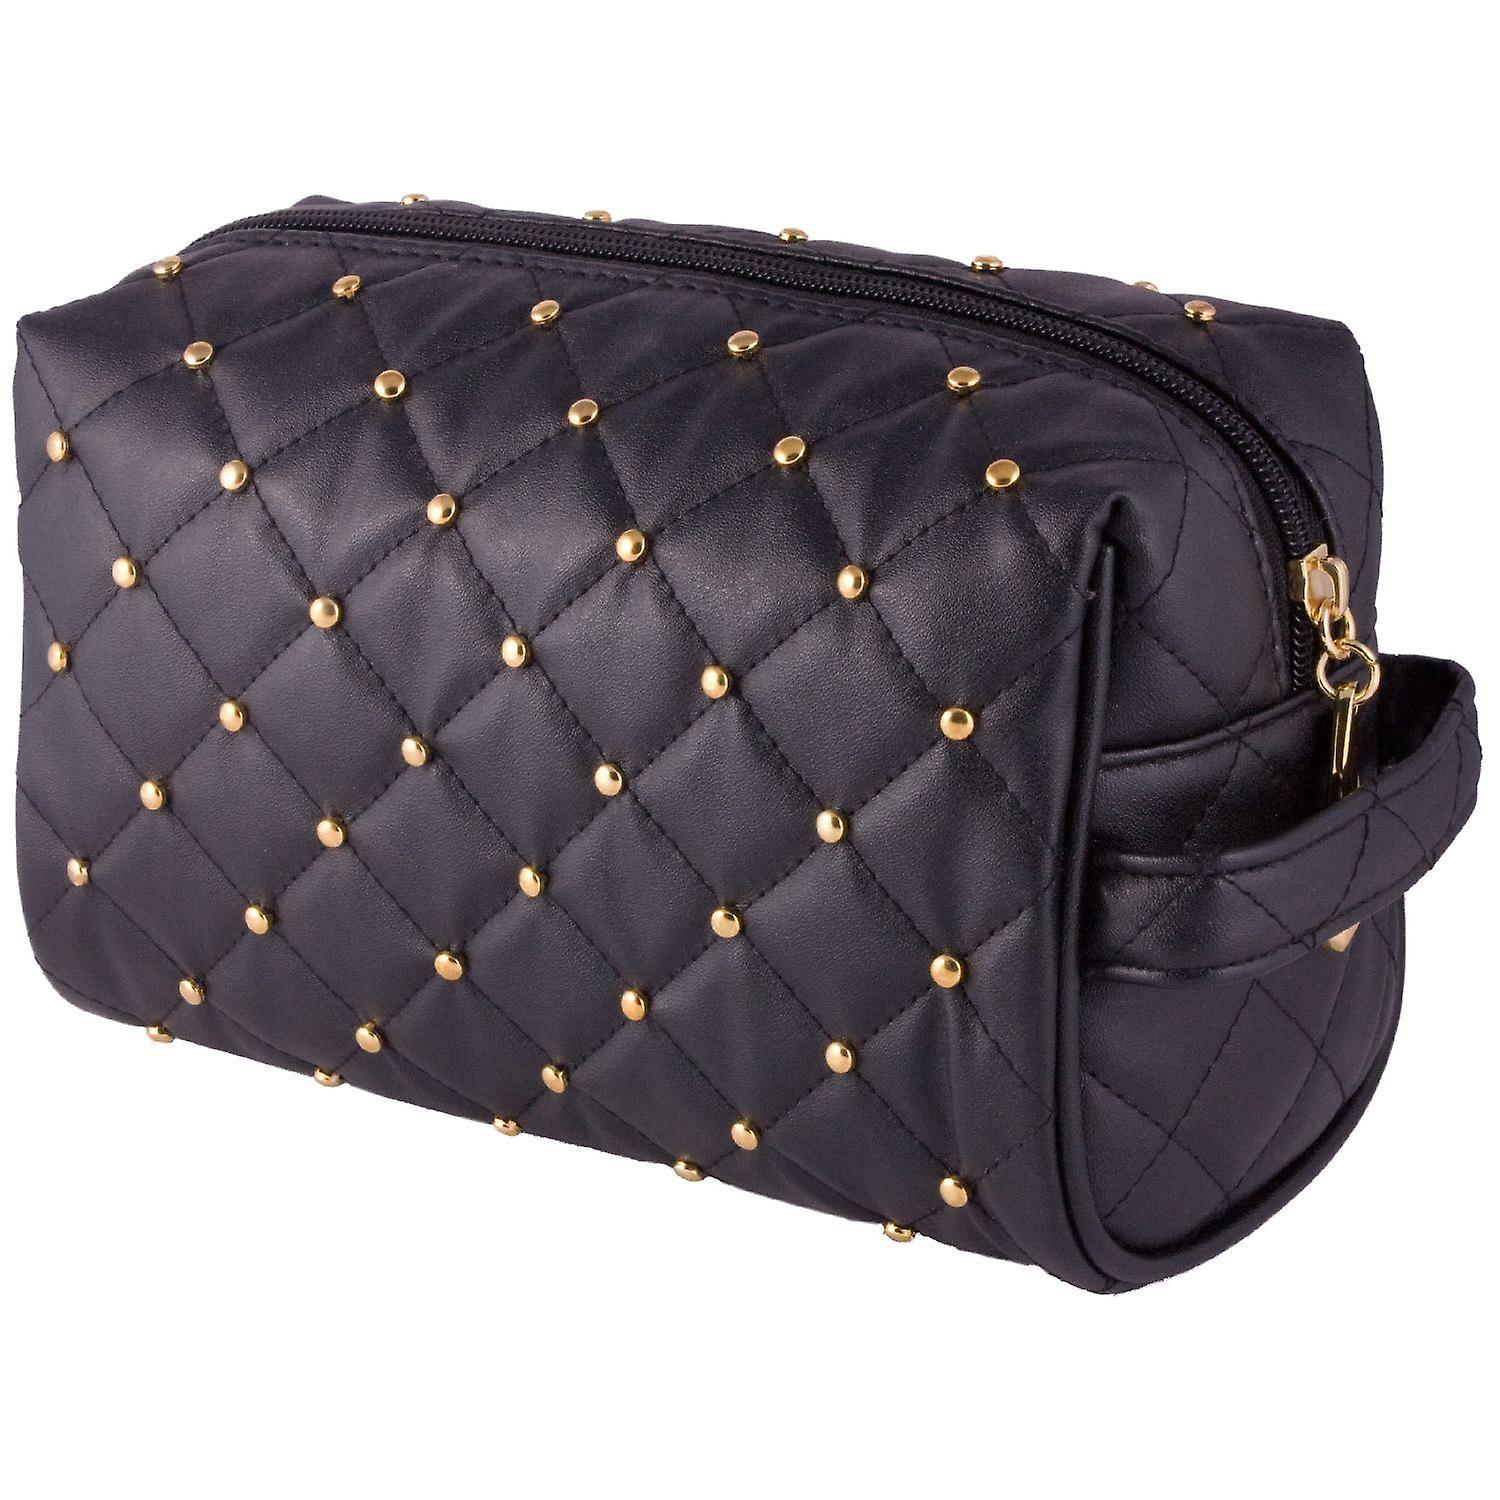 Danielle Black Studded Moda Make Up Case with Side Handle